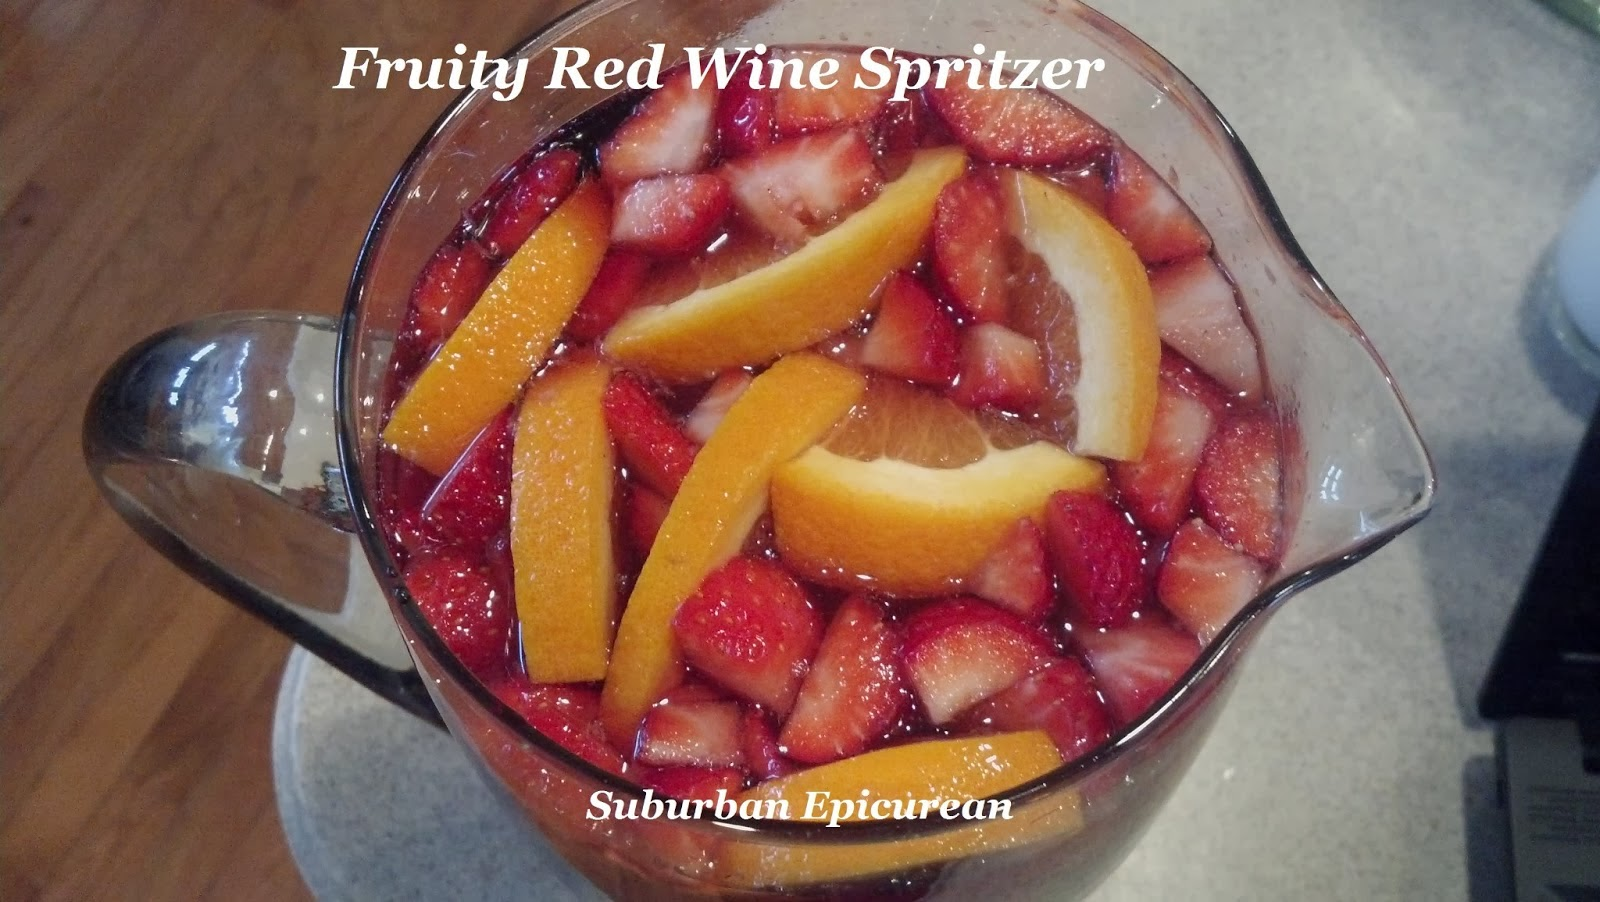 http://suburbanepicurean.blogspot.com/2013/03/fruity-red-wine-spritzer.html